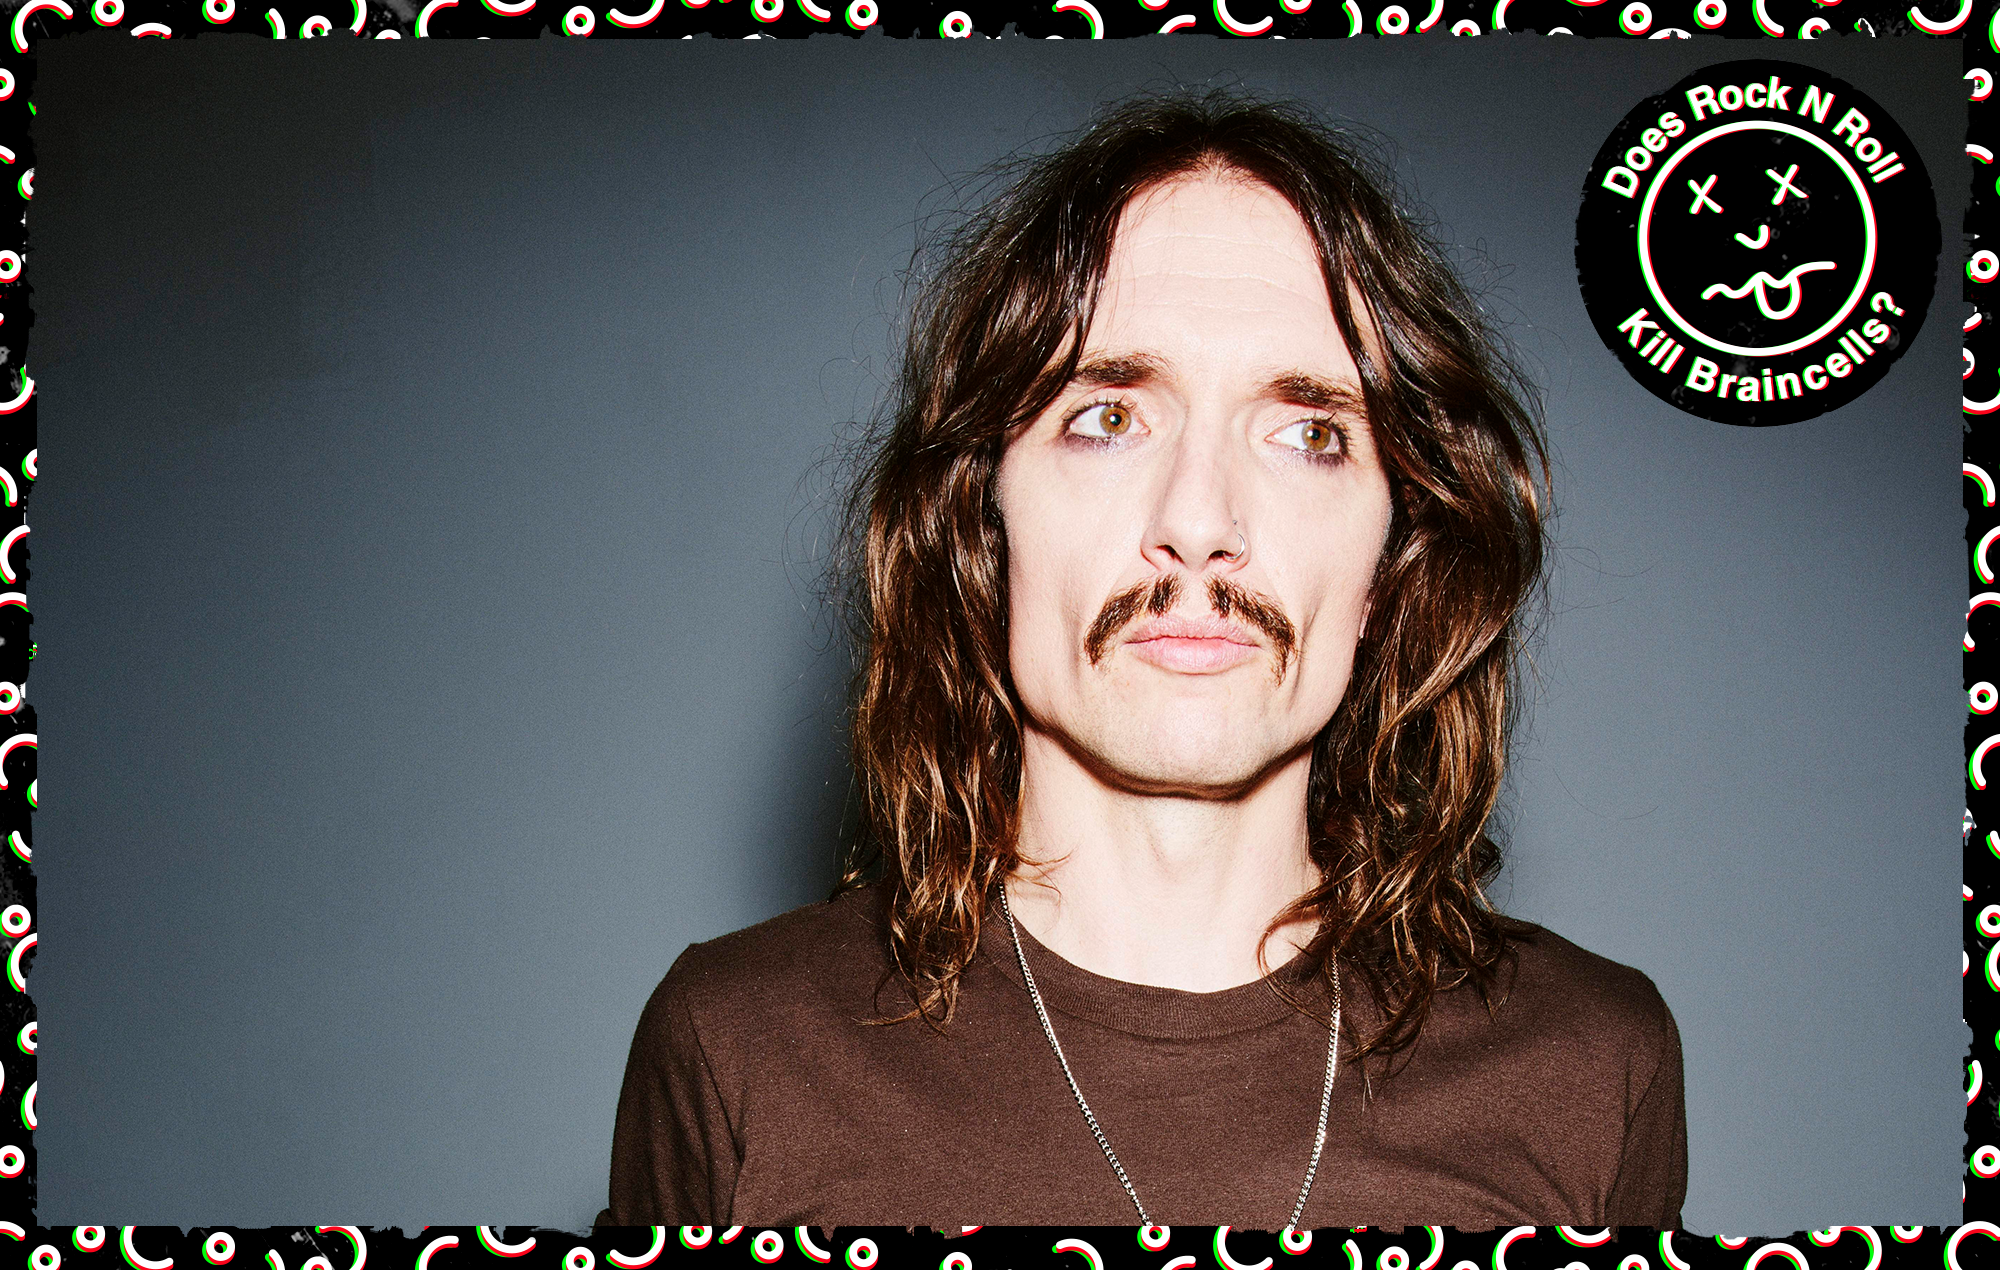 Does Rock 'N' Roll Kill Braincells?! – Justin Hawkins, The Darkness